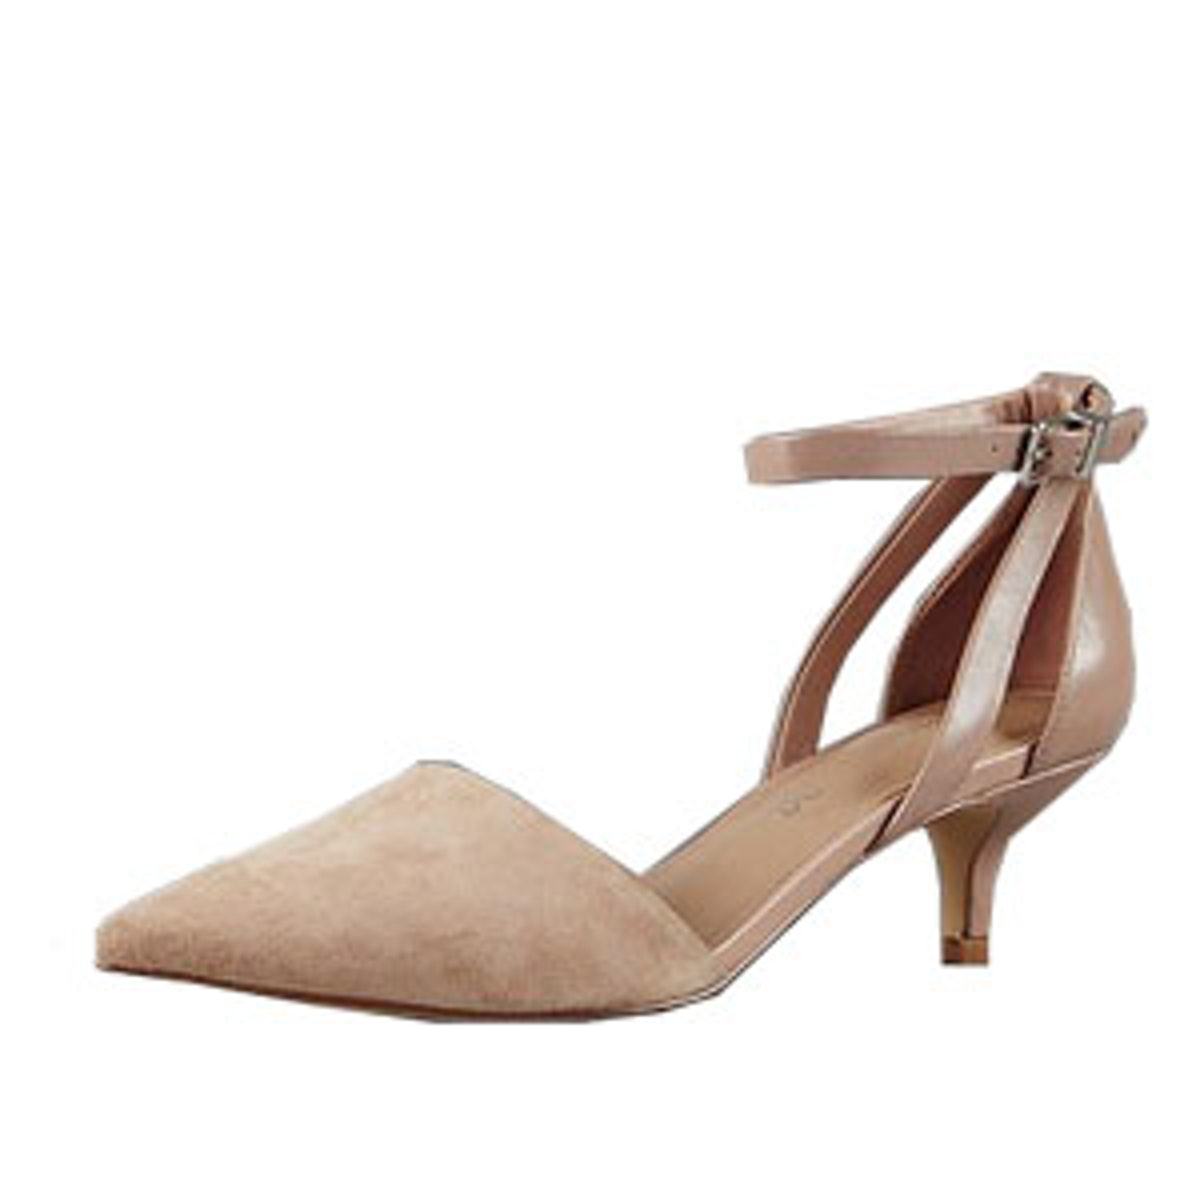 Suede Strappy Pointed Toe Court Shoes